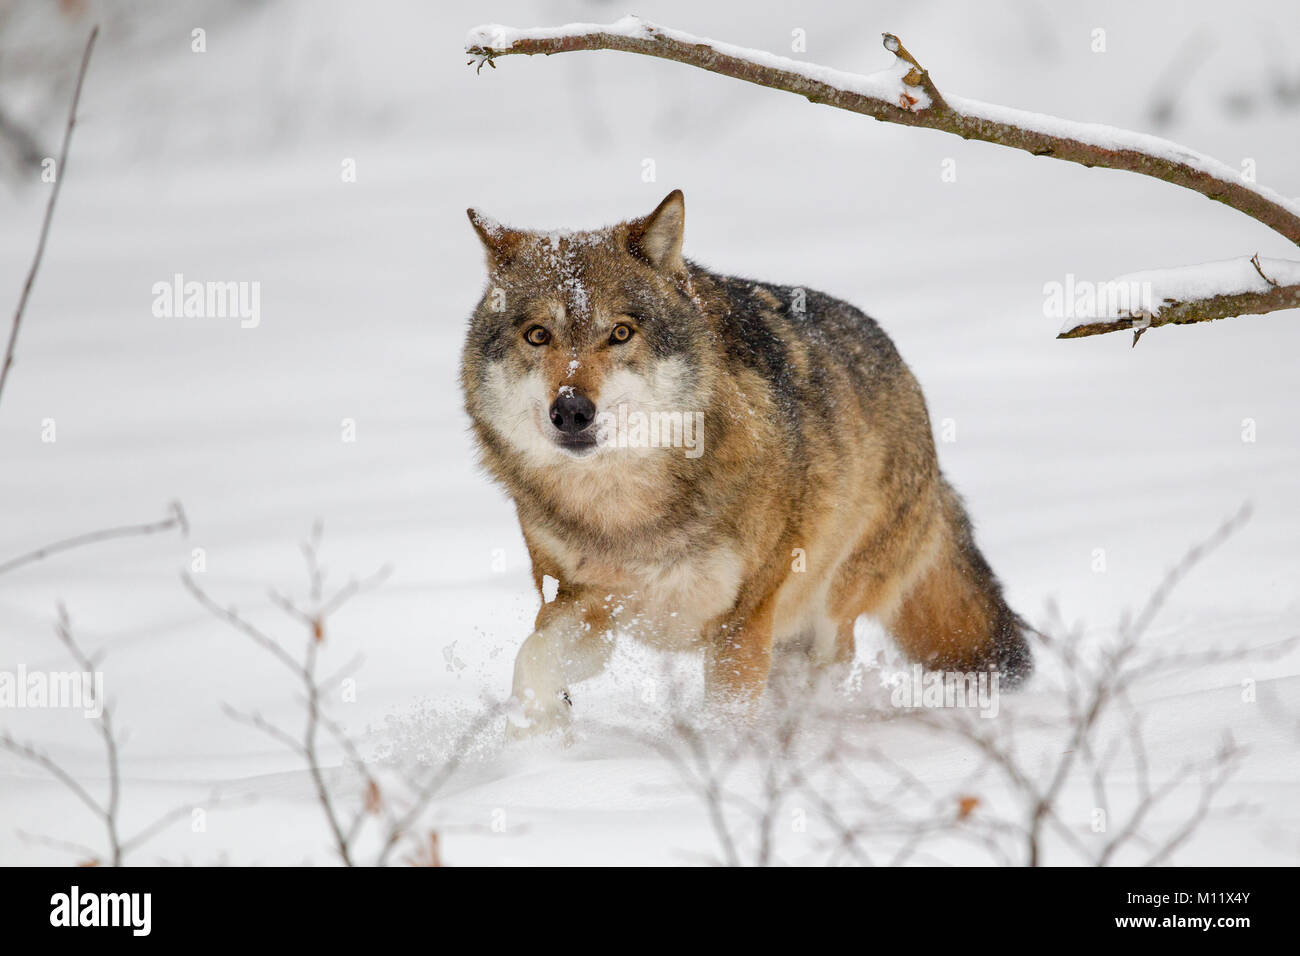 Wolf (Canis lupus) in the snow in the animal enclosure in the Bavarian Forest National Park, Bavaria, Germany. Stock Photo